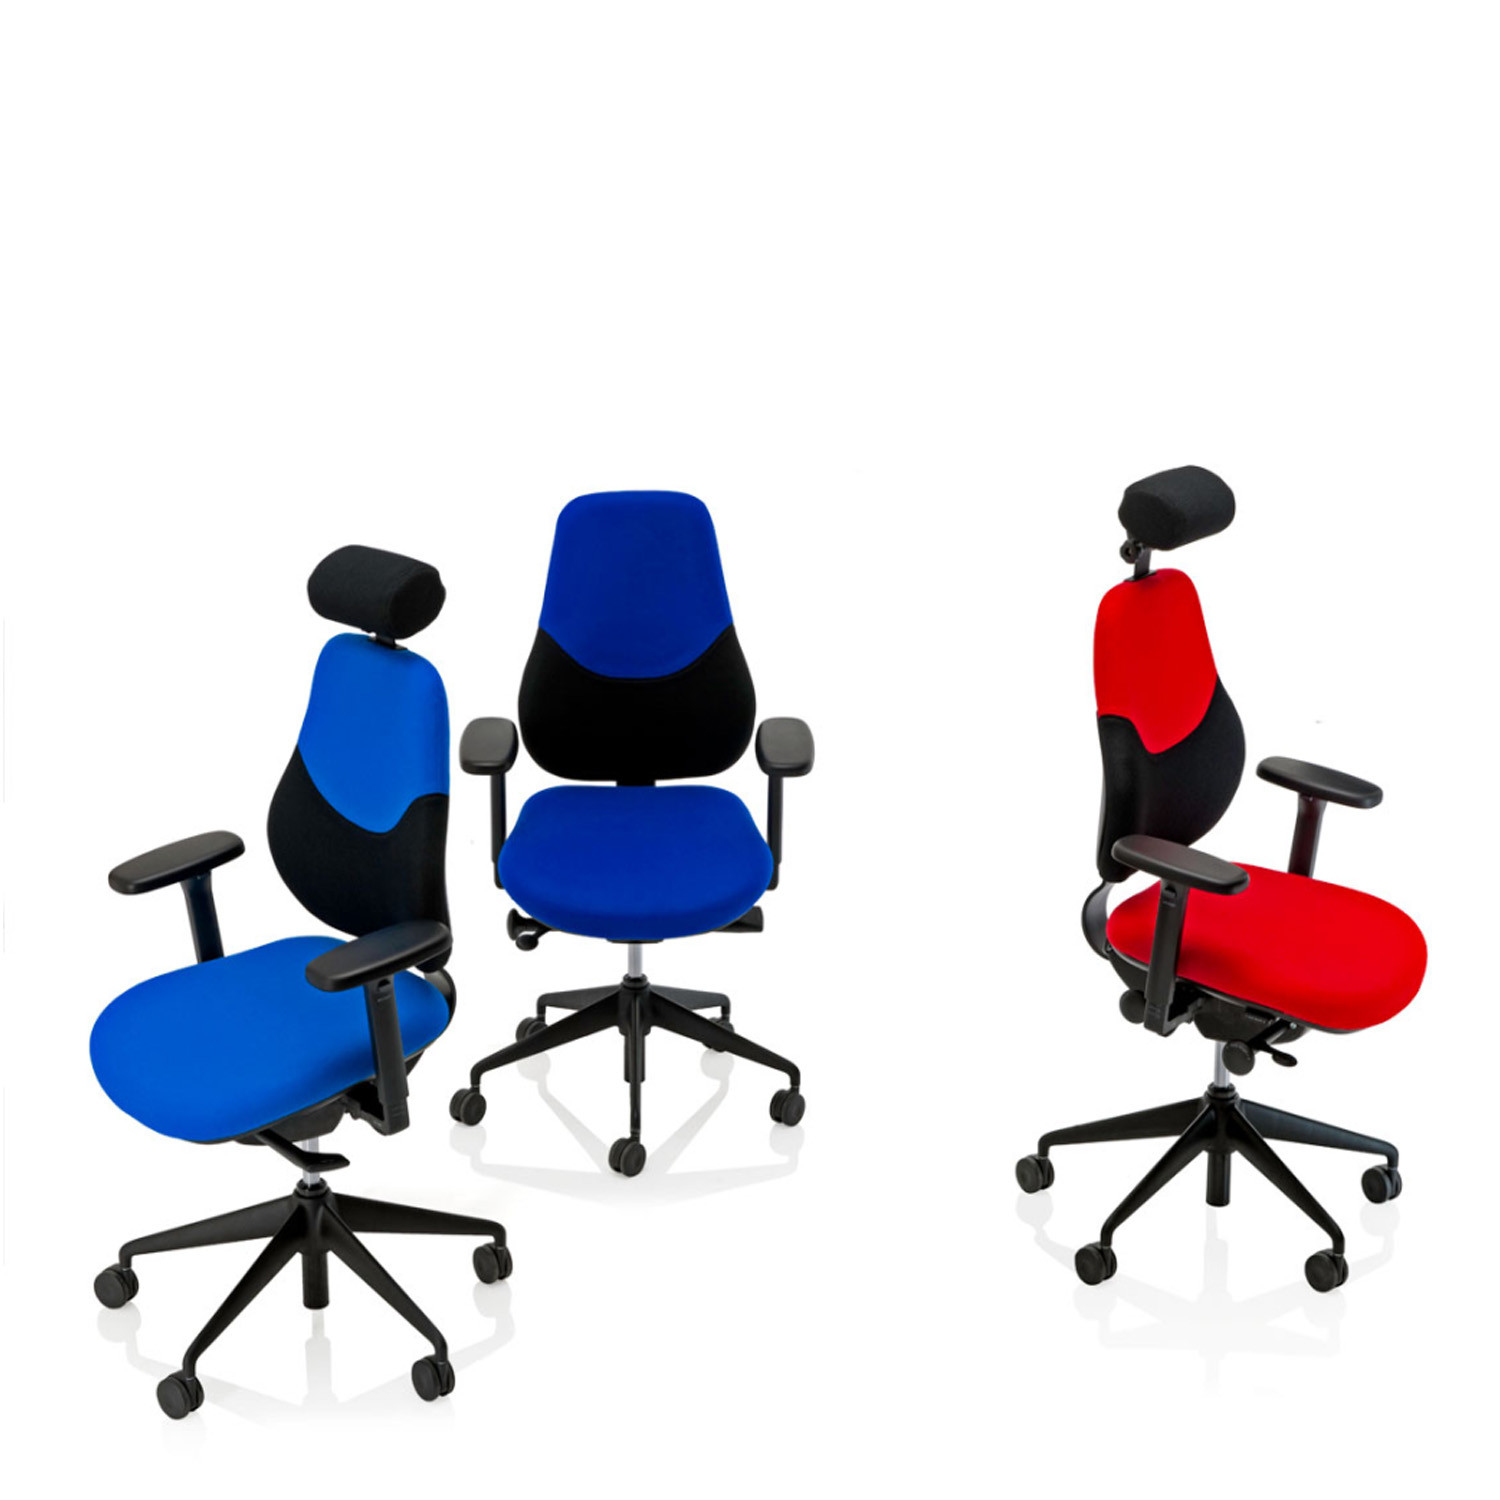 Flo Ergonomic Task Chairs by Orangebox